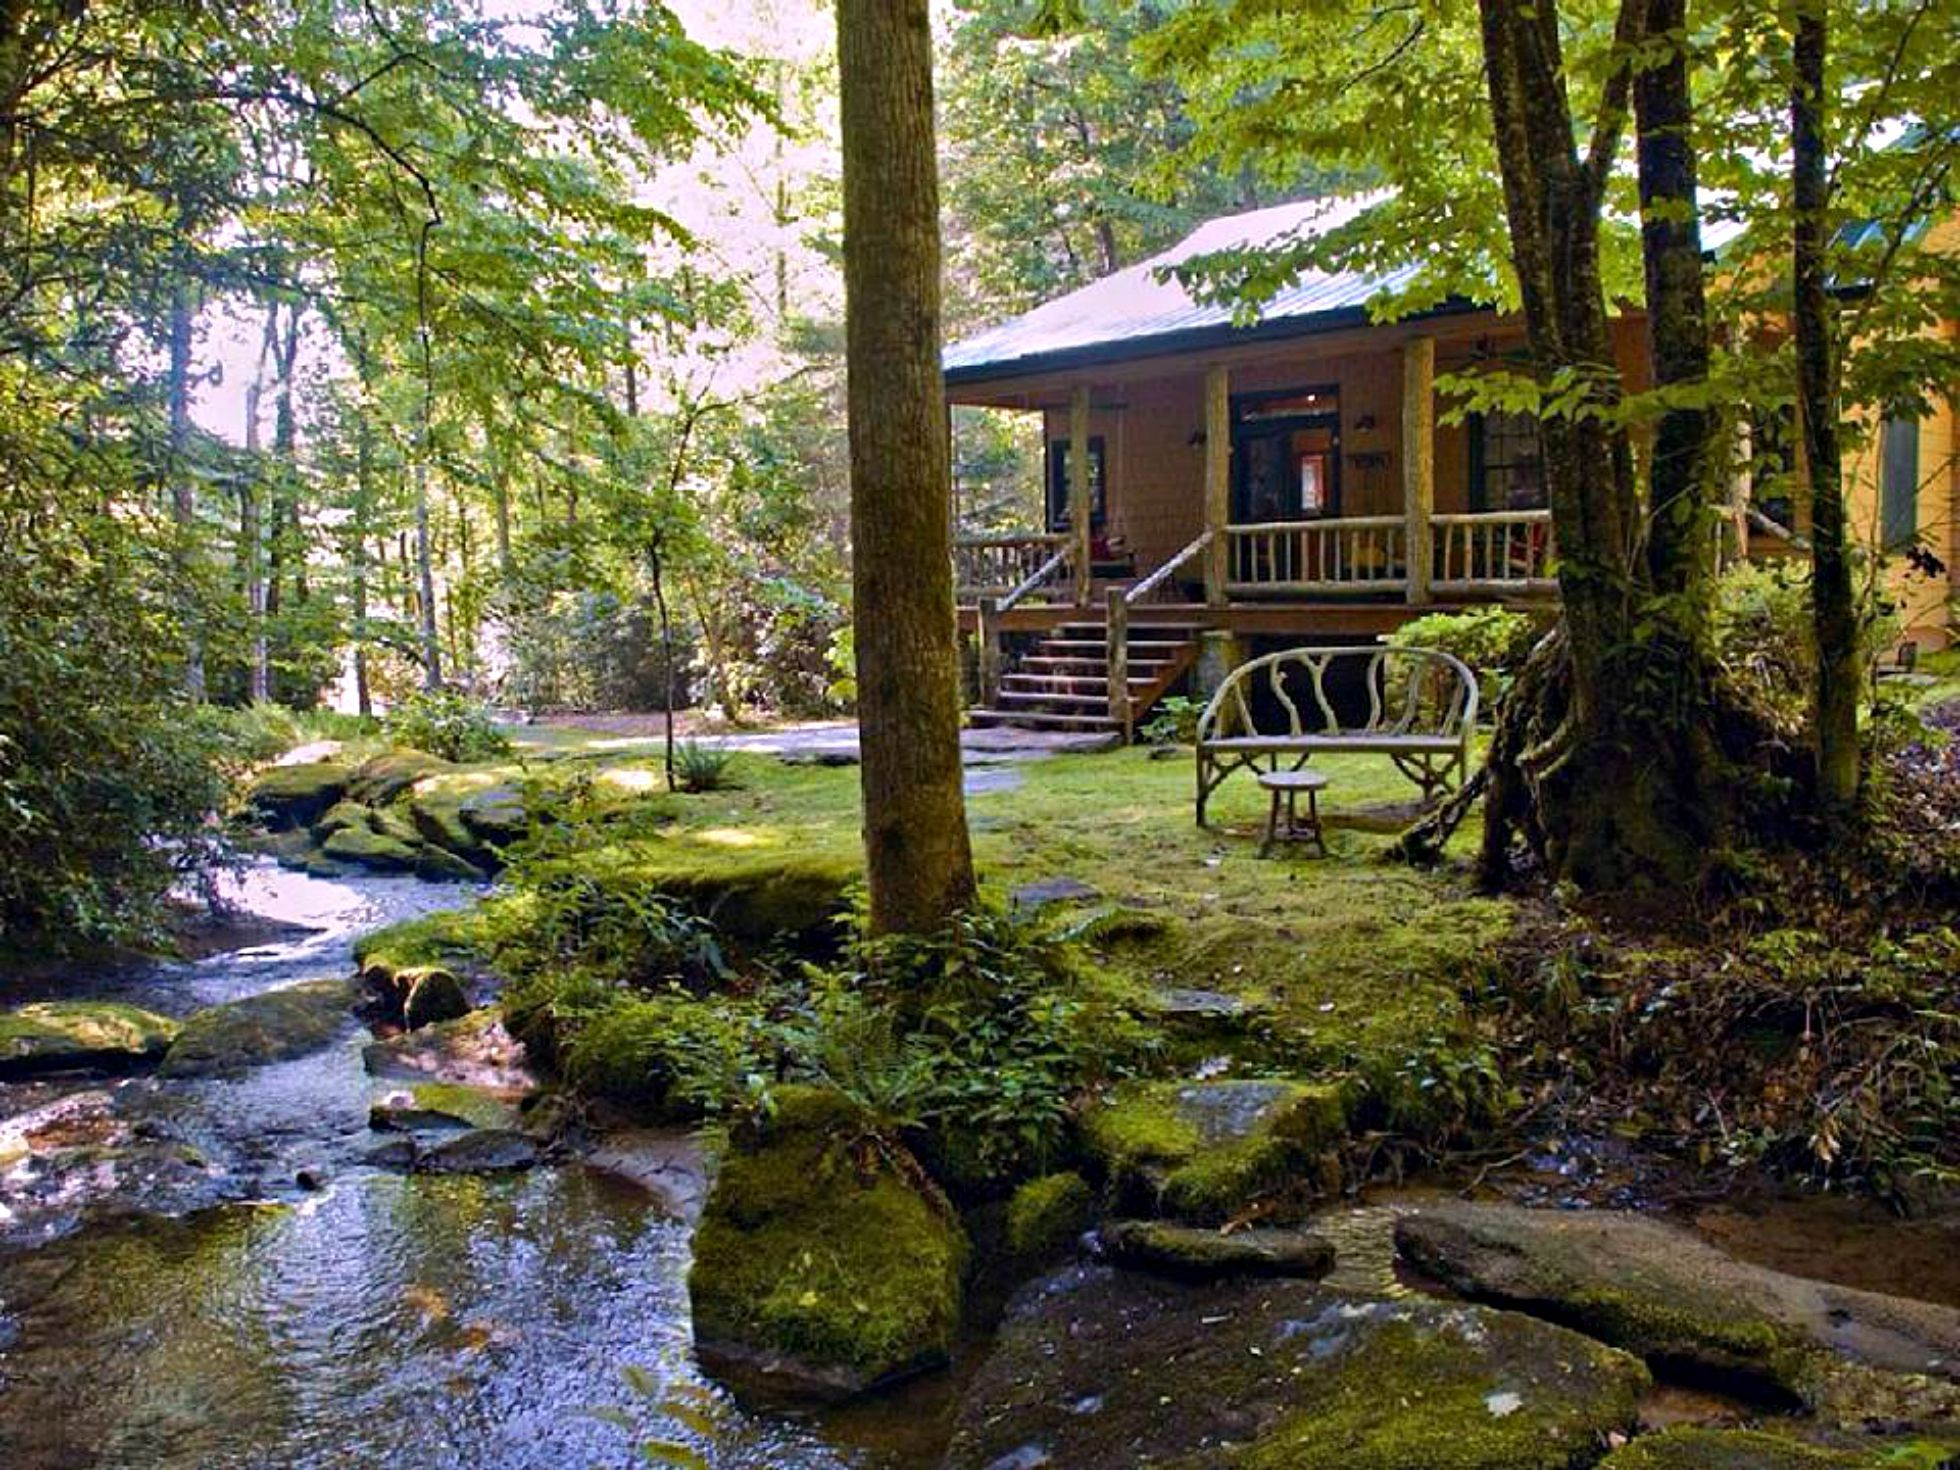 nturl pocono rental info friendly pet poconos cabin wonderlnd vacation rentals for drobek couples cabins